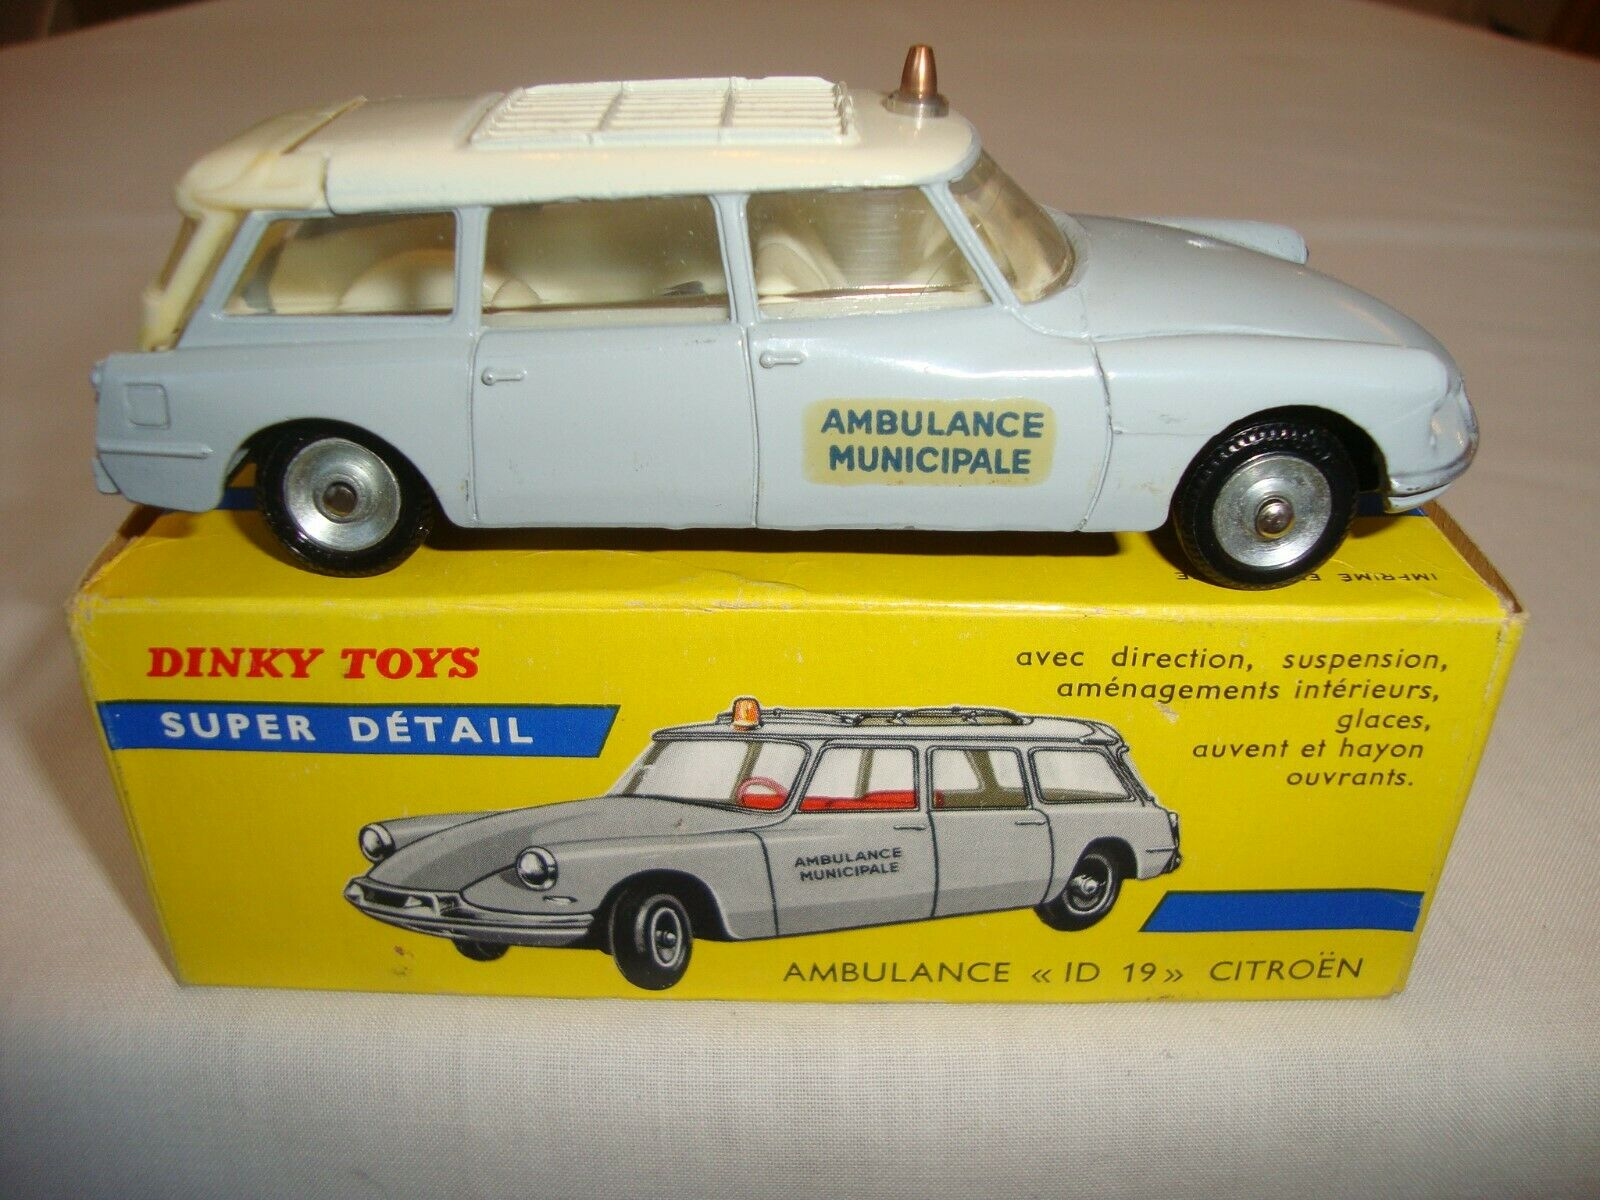 ORIGINAL French Dinky 556 ambulance ID 19 CITROEN-nr Comme neuf in original box